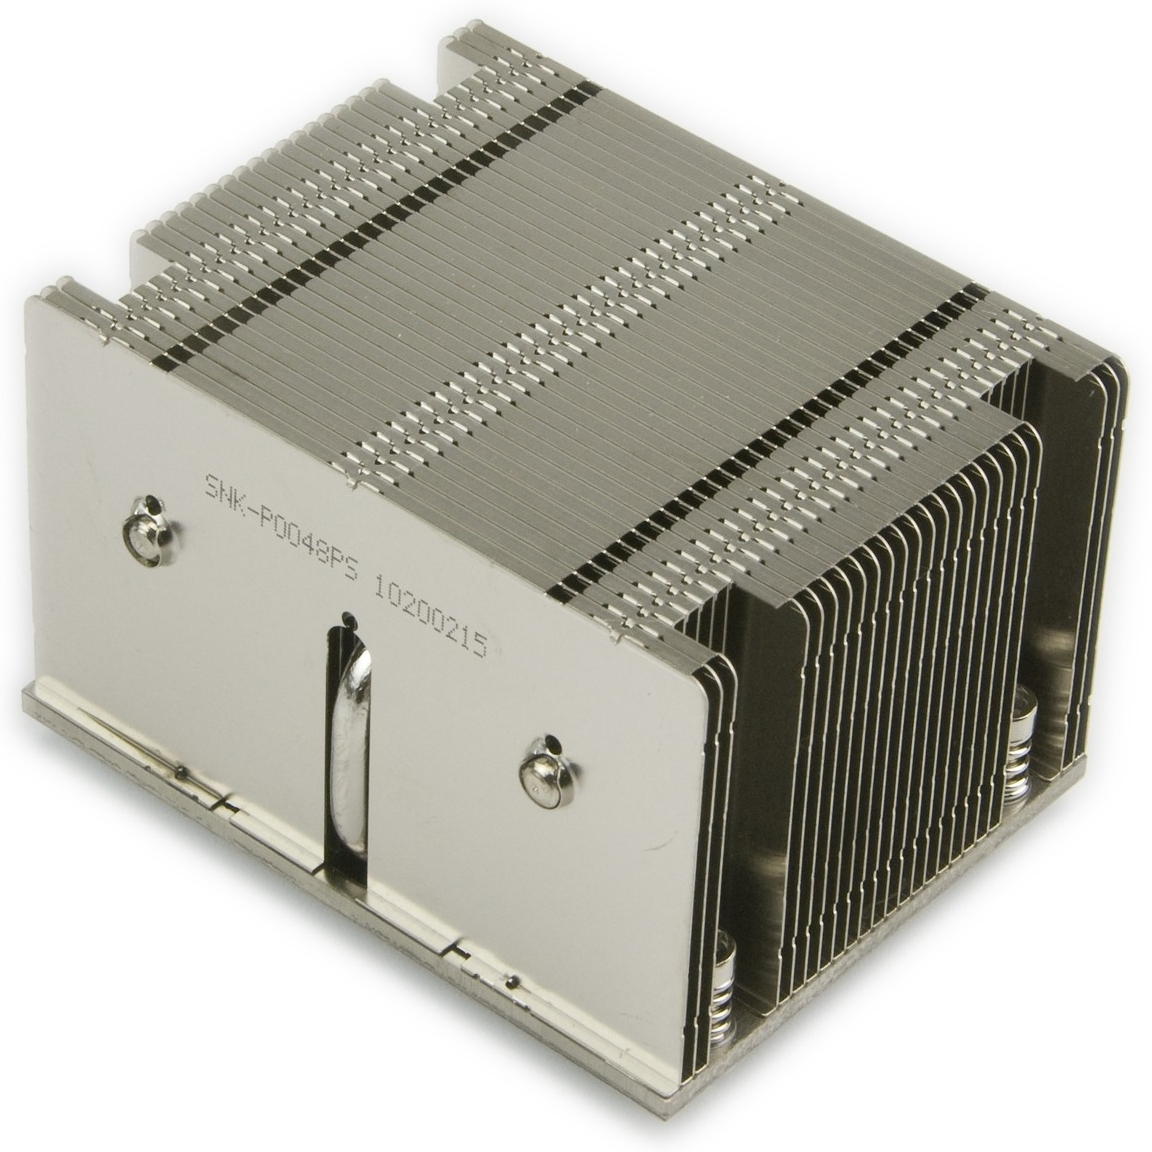 Supermicro SNK-P0048PS - 2U Passive CPU Heat Sink